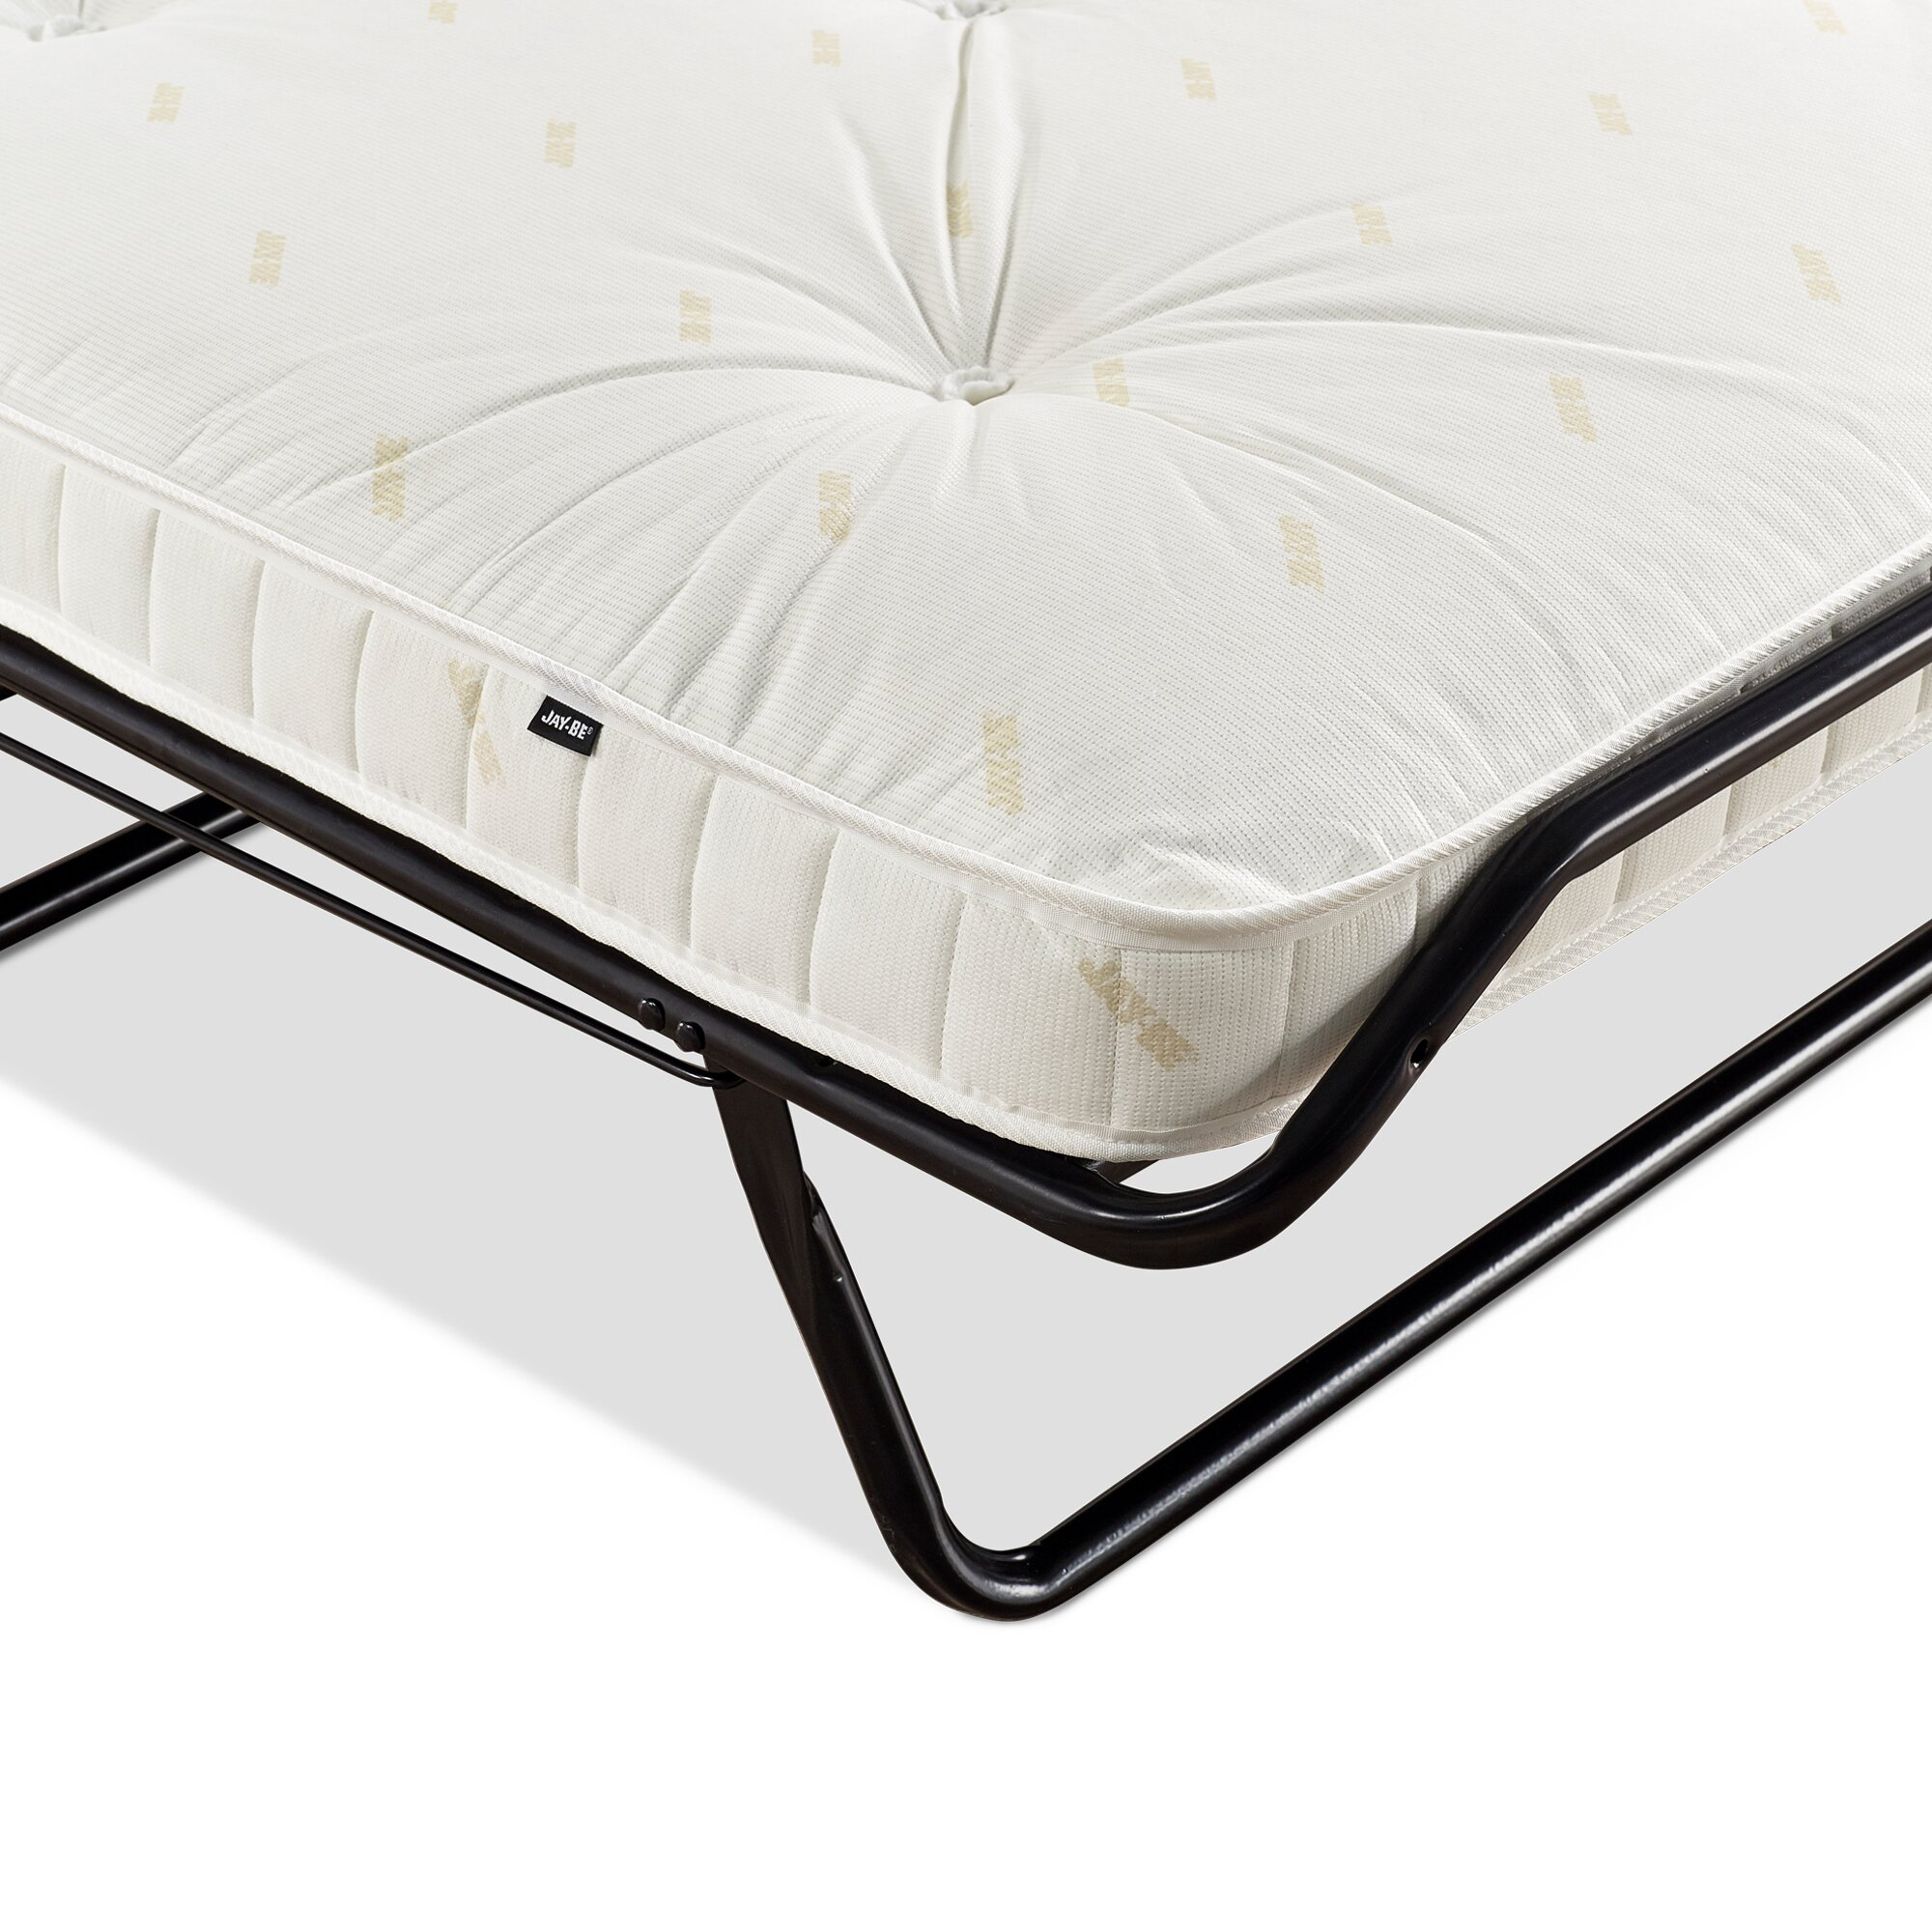 Jay Be Visitor Folding Bed With Pocket Spring Mattress